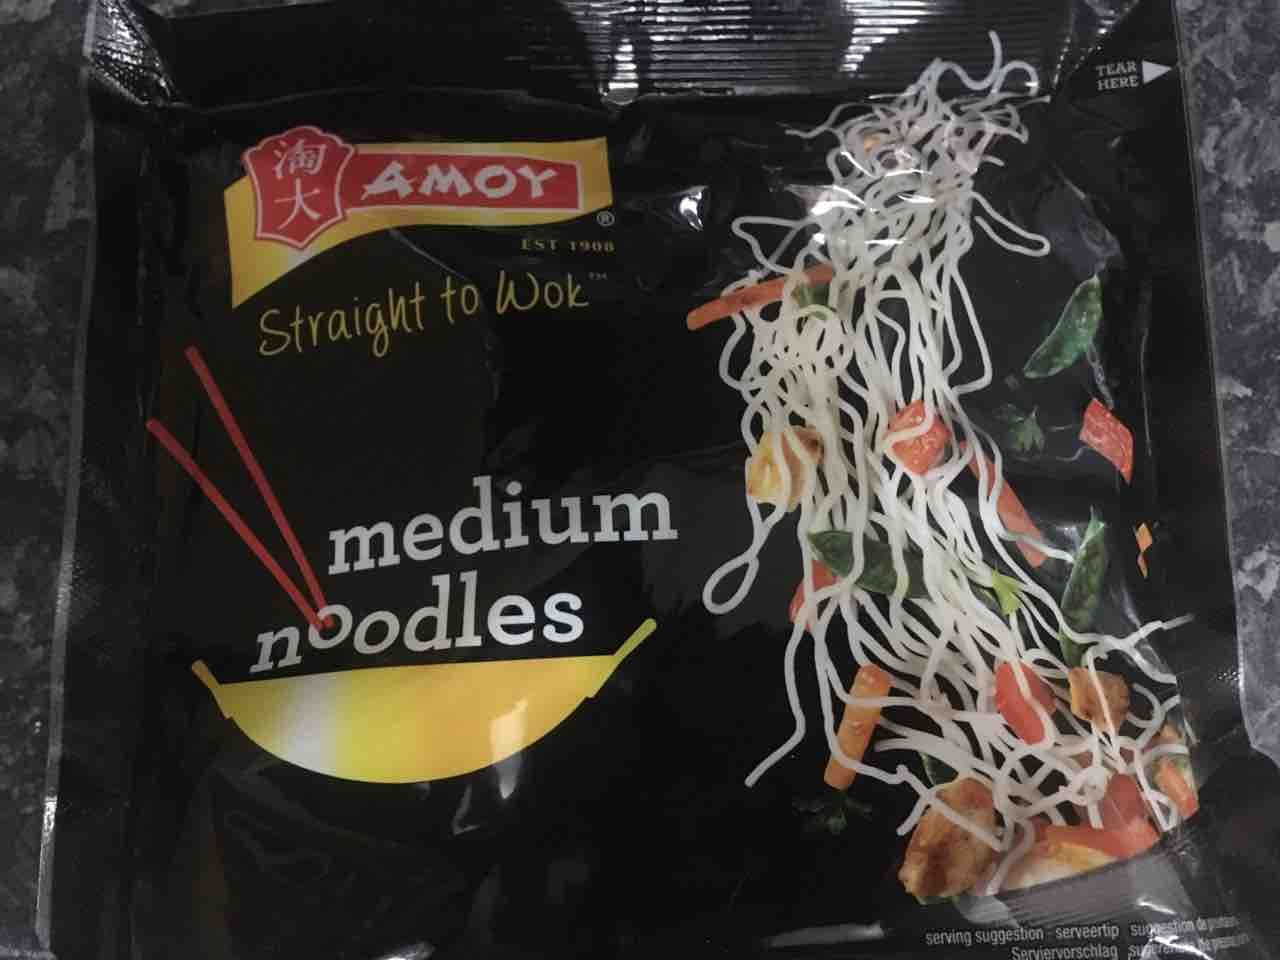 Noodles out of date